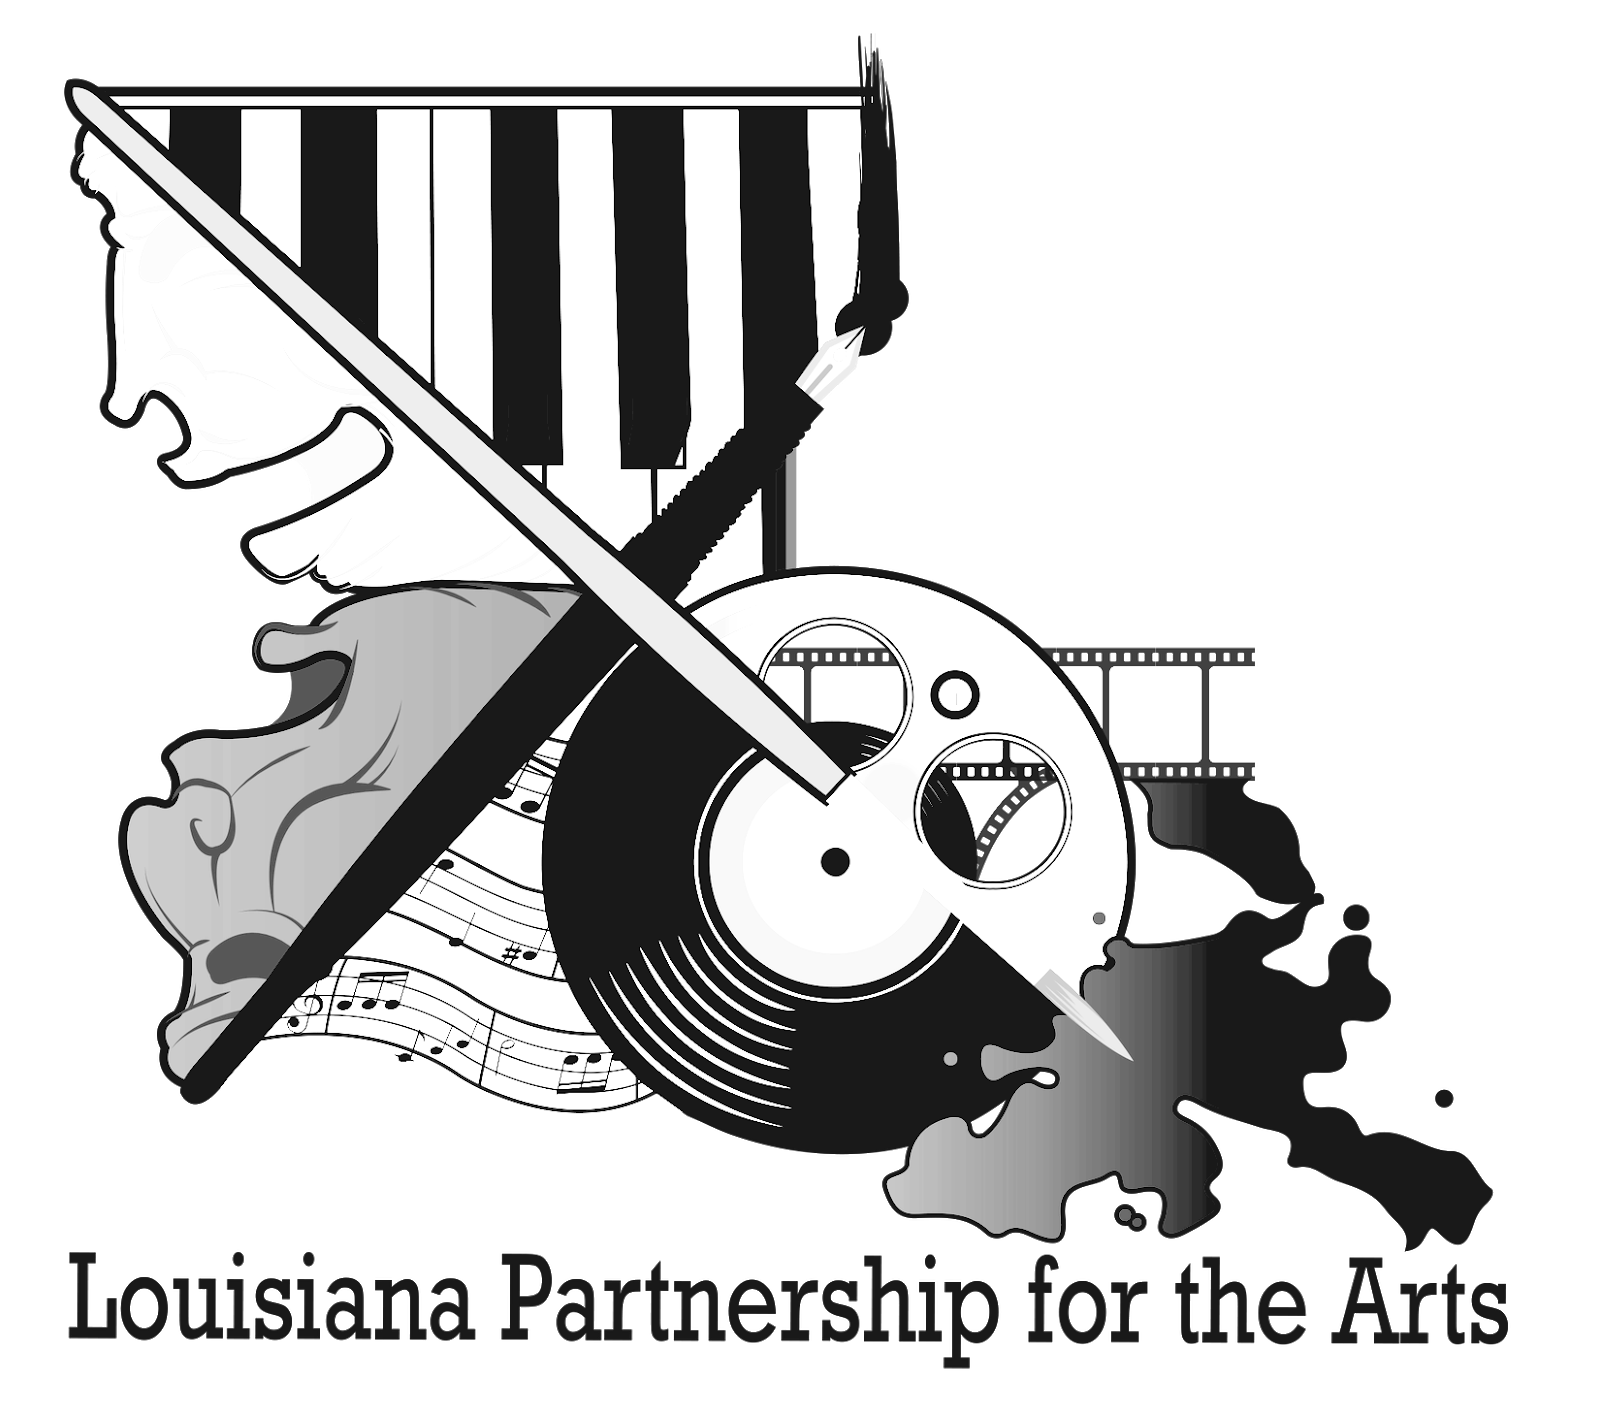 Louisiana Partnership for the Arts